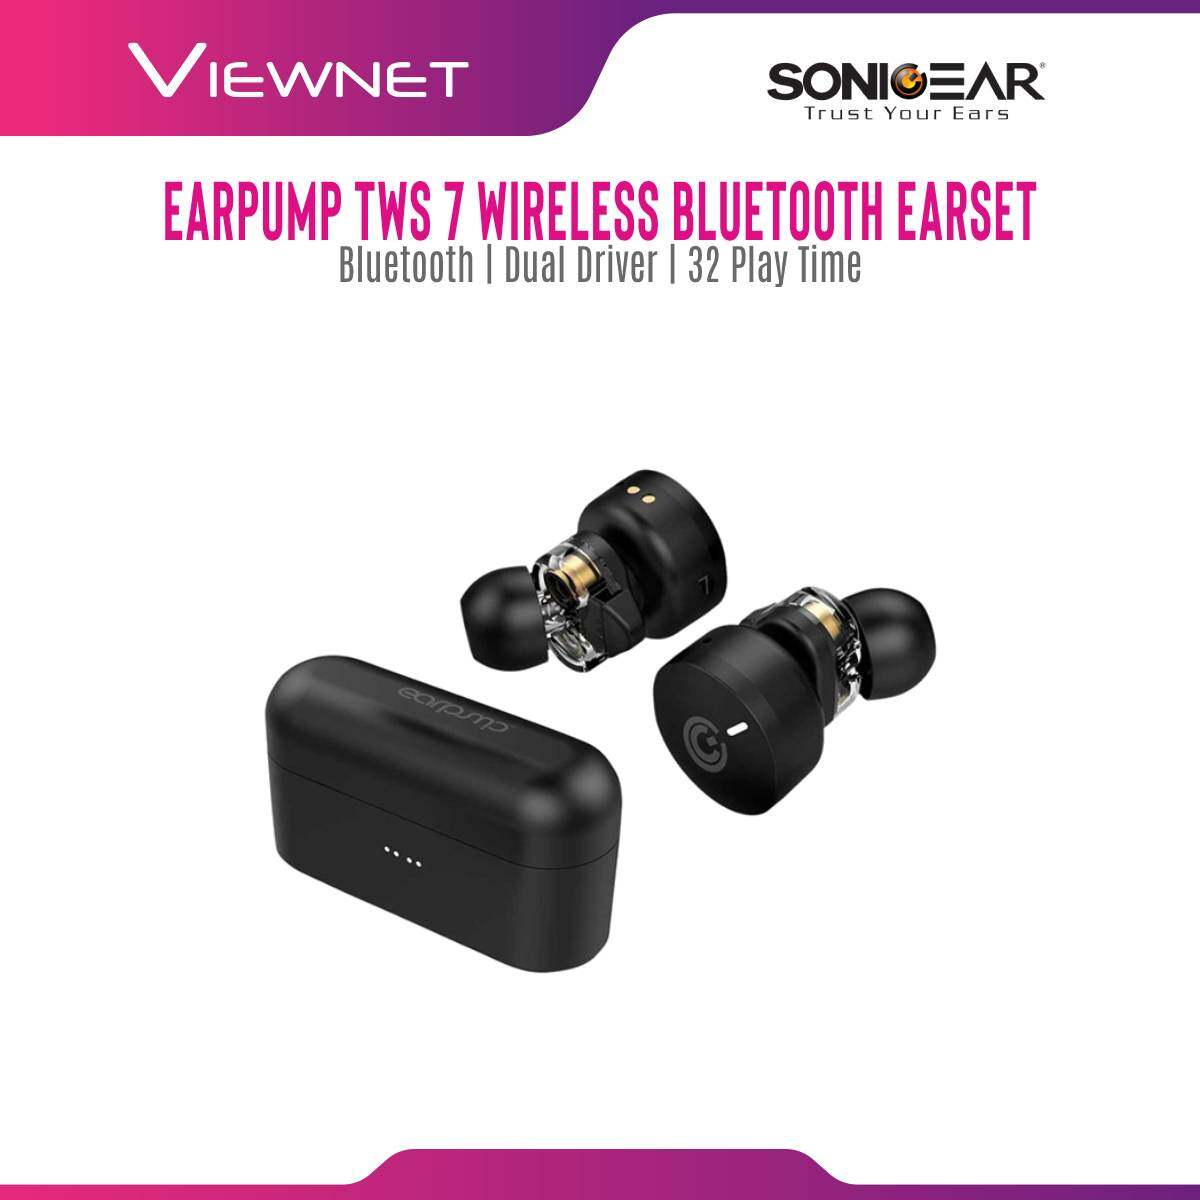 SonicGear Wireless Earpump Earbud TWS 7 HyperBass with Bluetooth 5.0, Dual Driver, Ergonomic In Ear Design, Voice Assistant, Super Mic Reception, 8 Hour Music Play Time (50% Volume) + 24 Hour for Battery Case